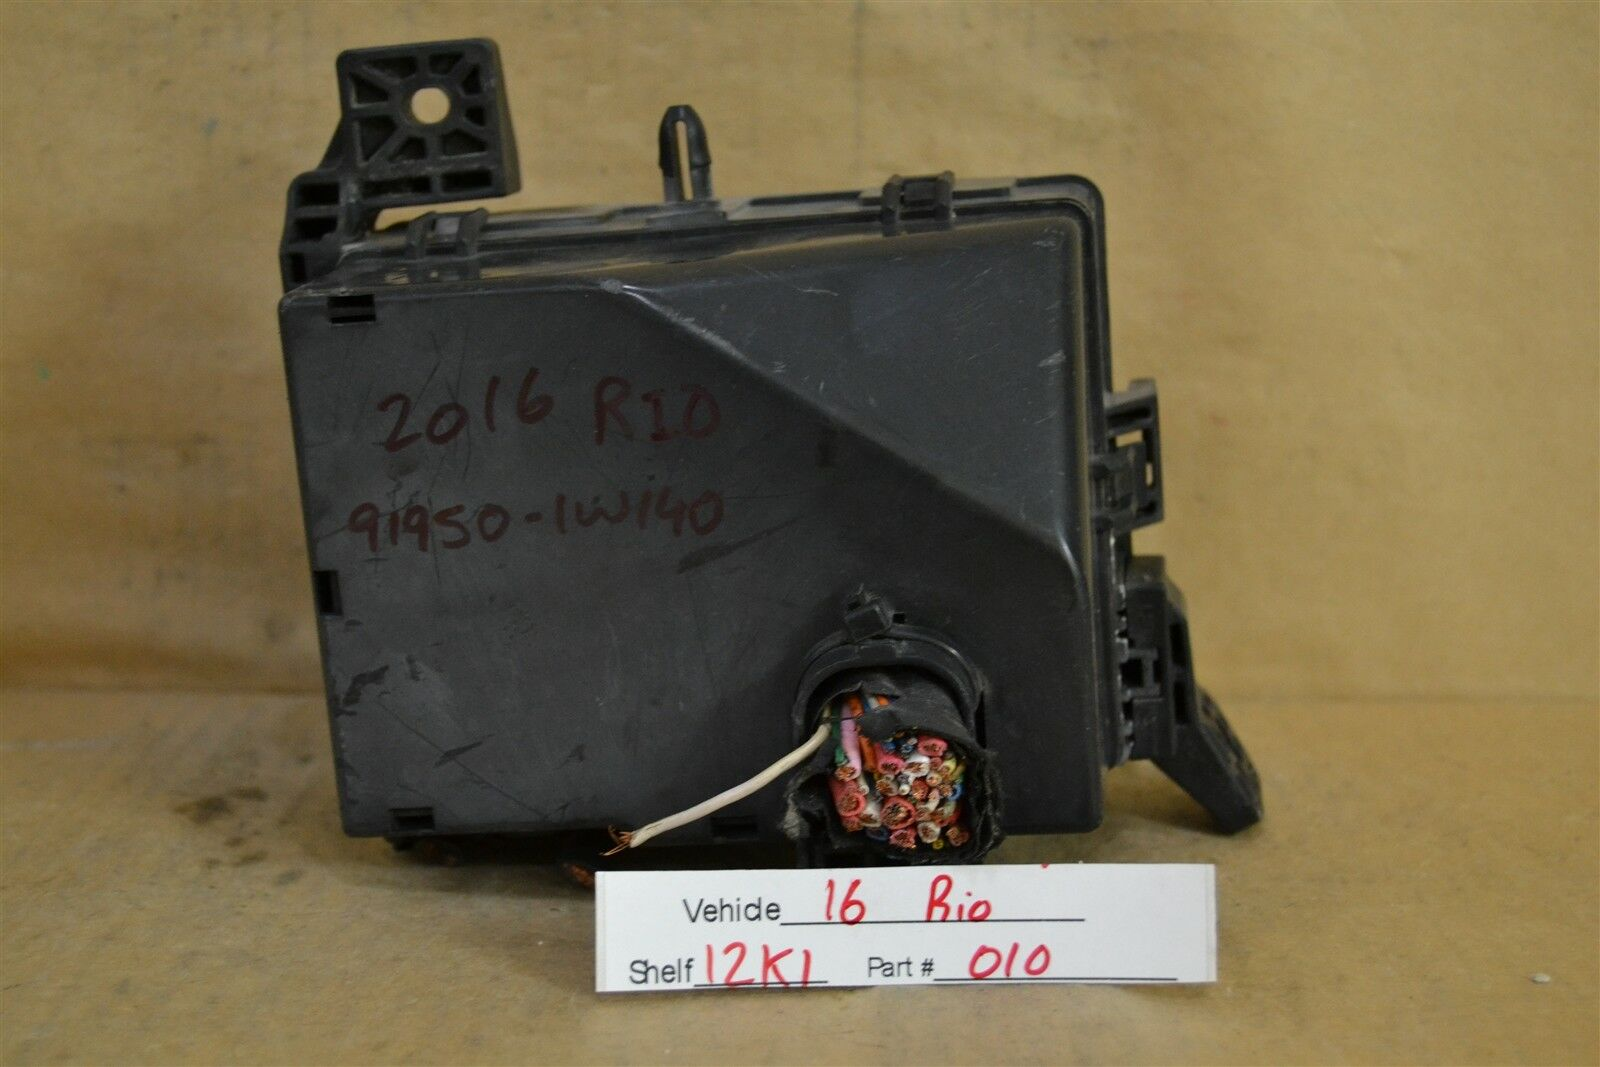 Used Kia Rio Computers Chips Cruise Control And Related Parts For Sale Fuse Box 2004 2014 Relay Unit 919501w140 Module 2010 12k1